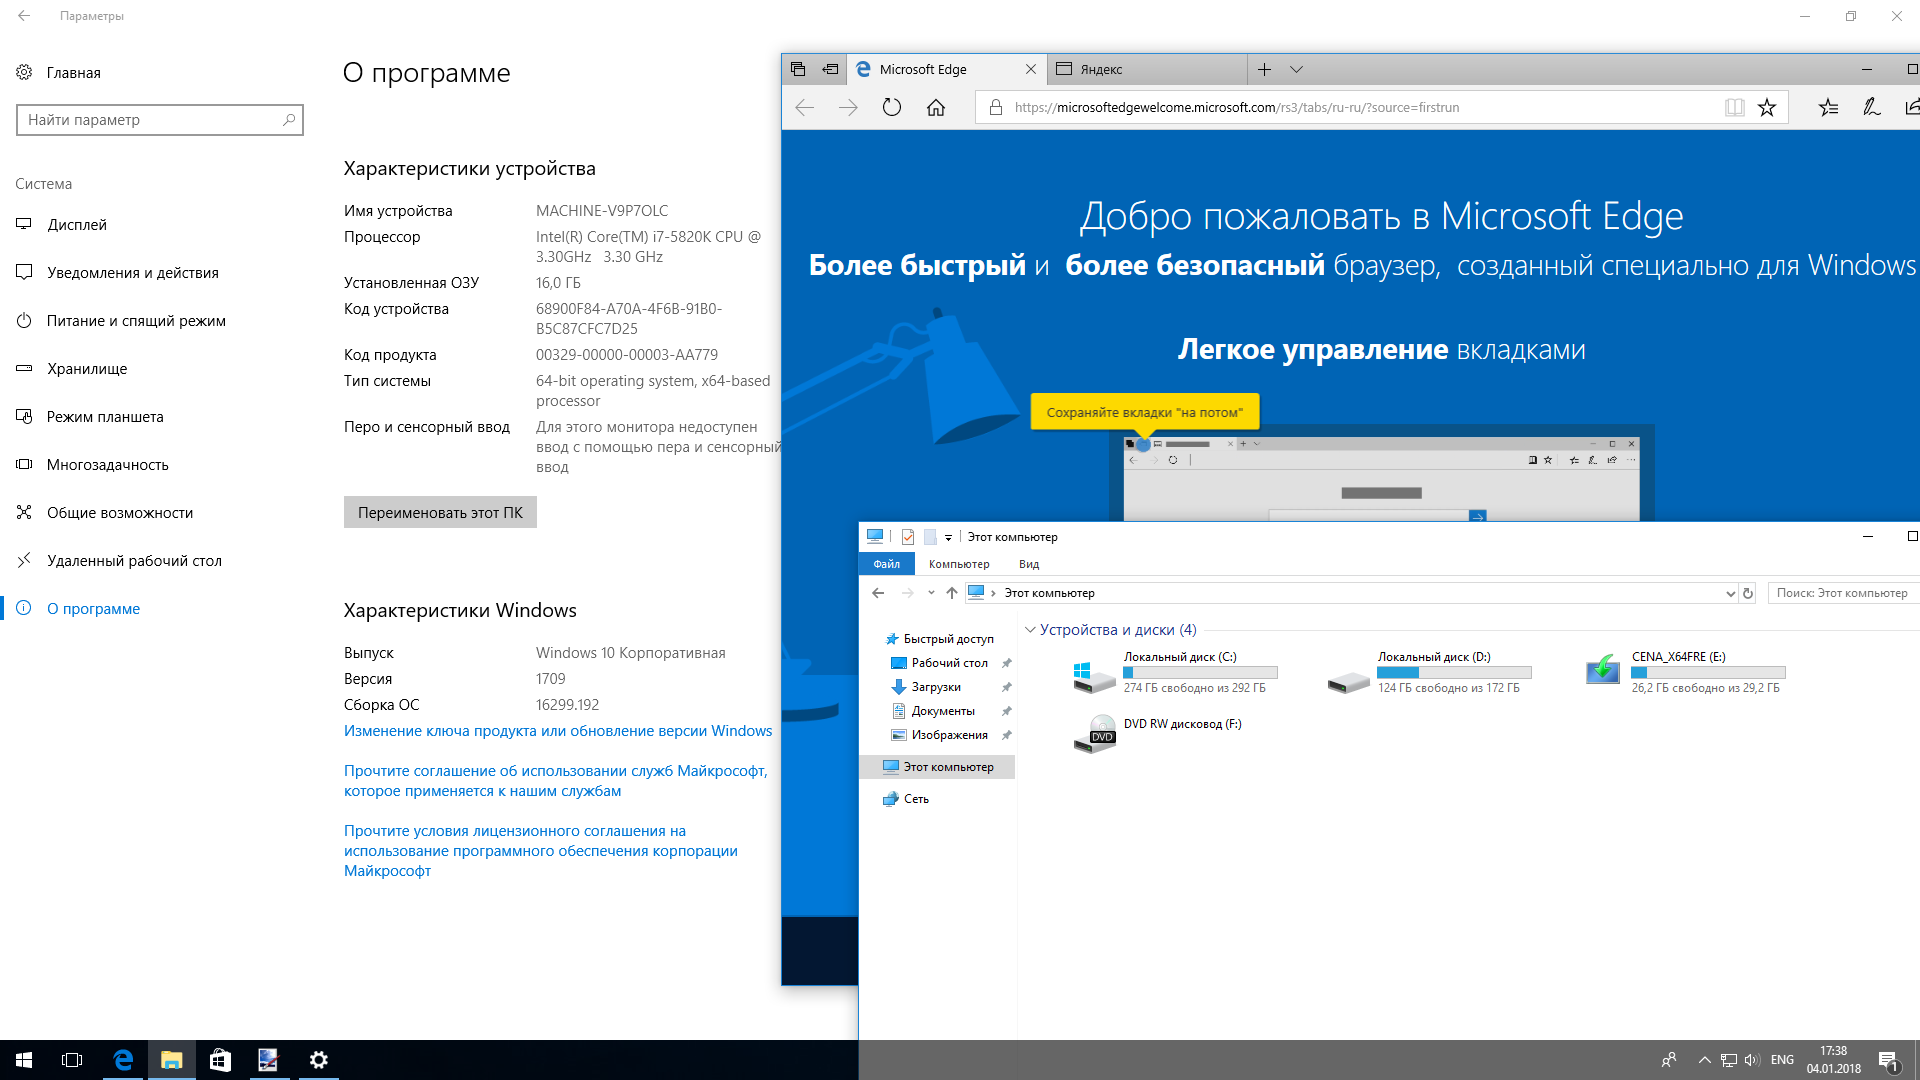 Windows 10 Ent. RS3  / x64  / G.M.A.  / QUADRO /  v.04.01.18 / ~rus~